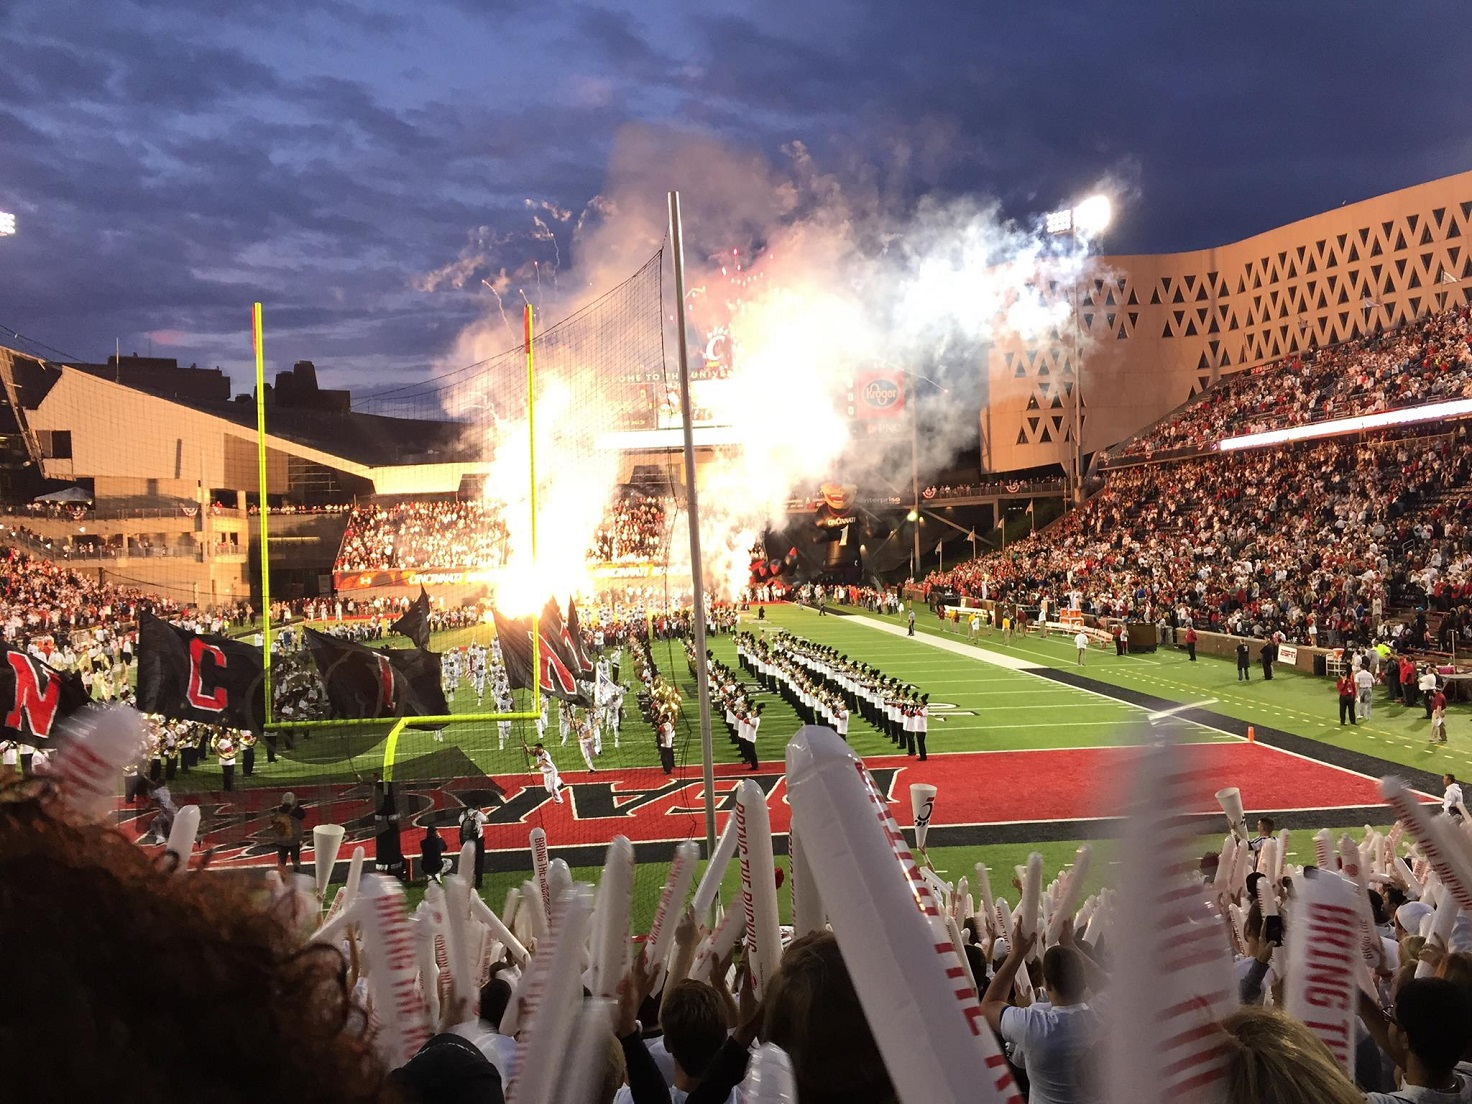 Cincinnati Bearcats Football Game